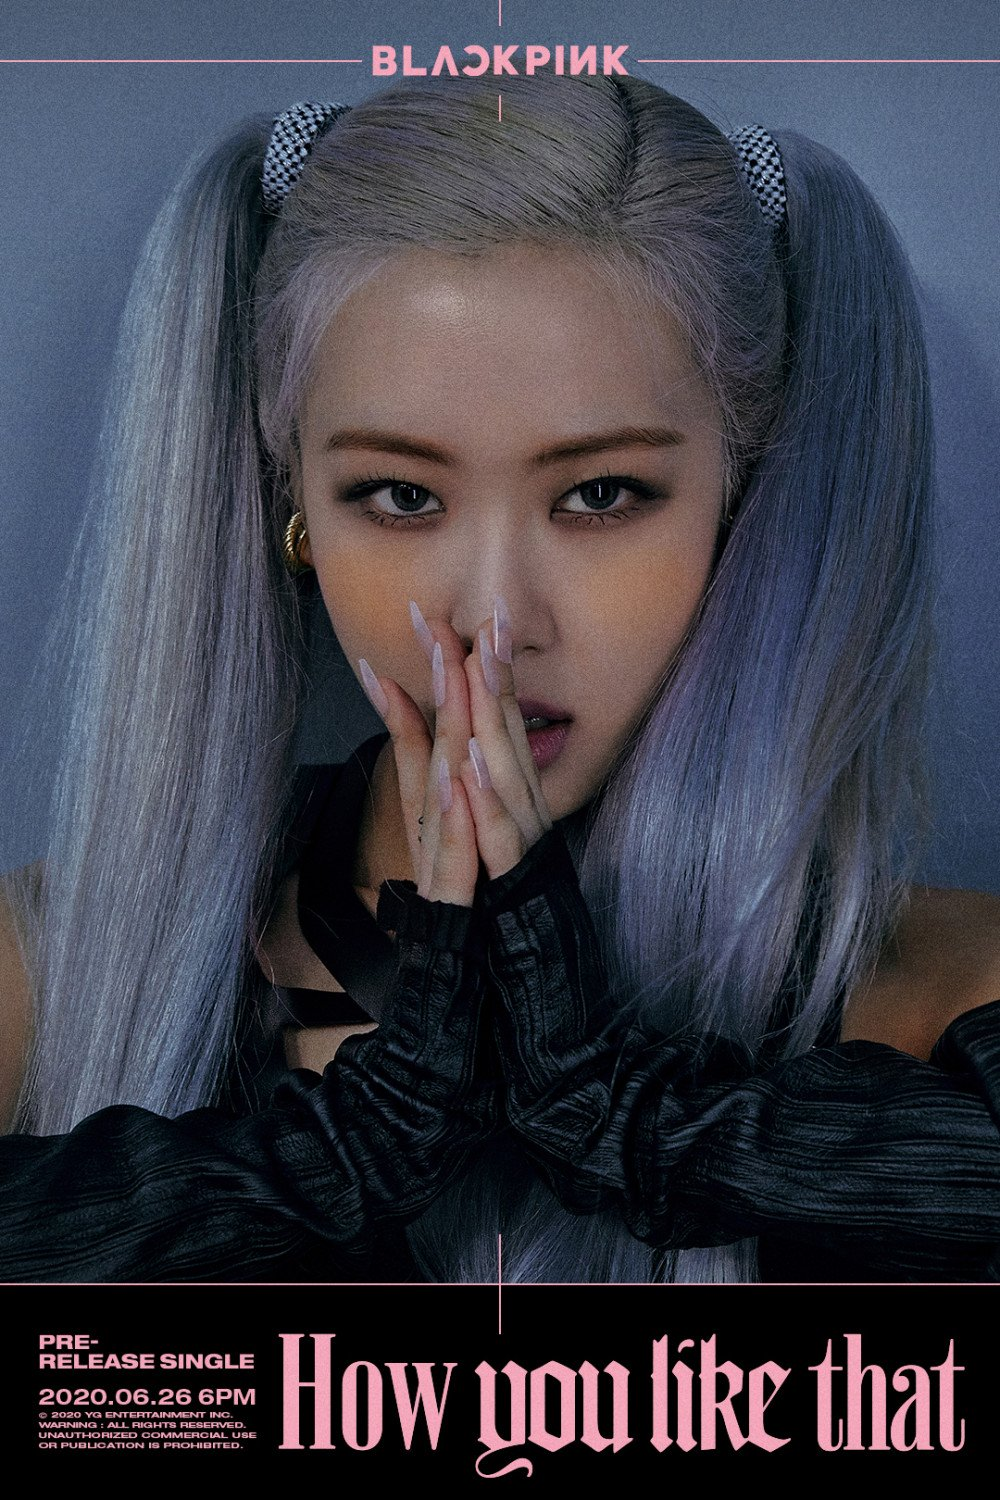 BLACKPINK girls are poised to kill with a stare in 2nd 'How You Like That' title posters